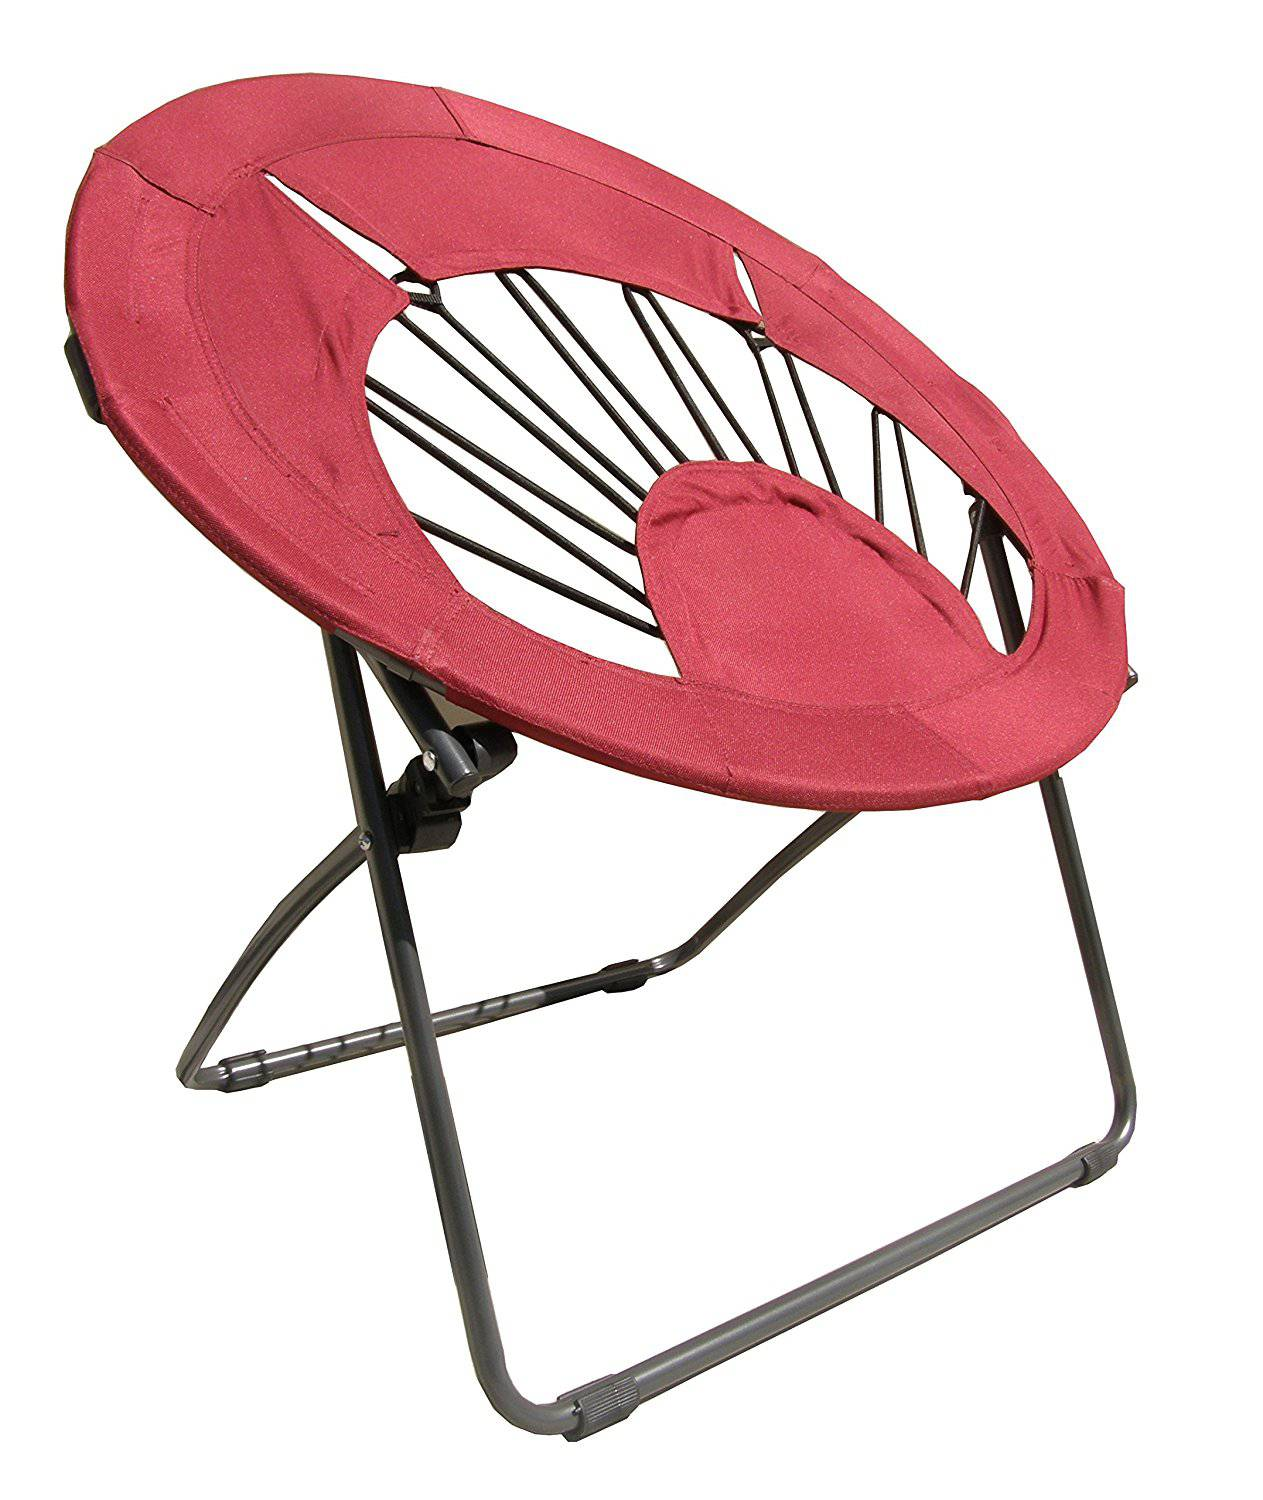 Captivating Top 25 Bungee Chairs (Bunjo Chairs) In One Page